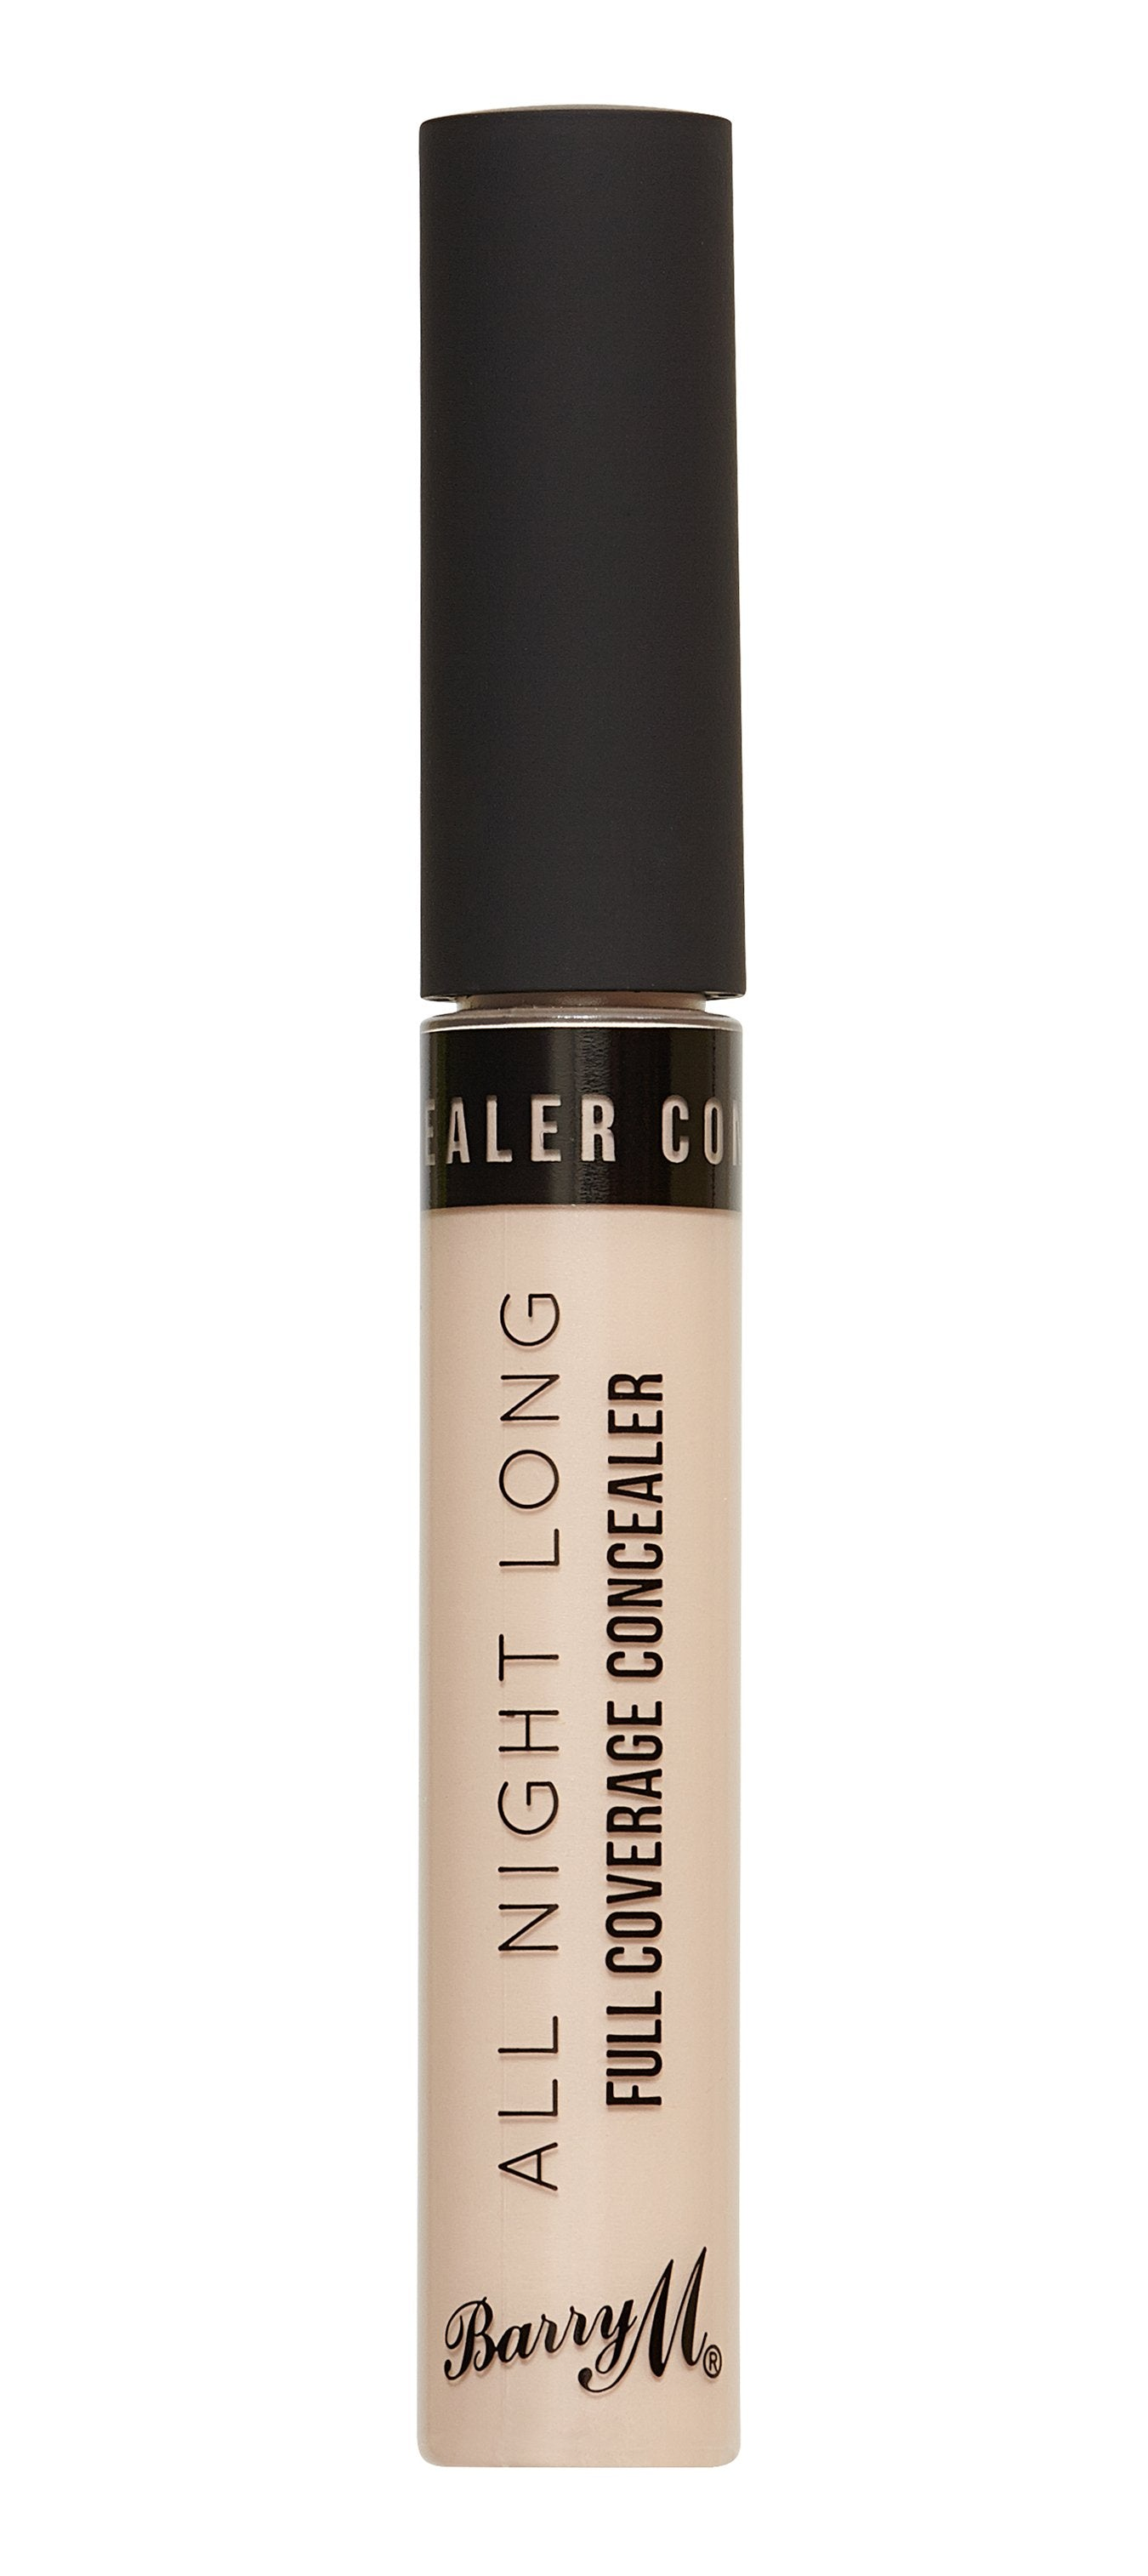 All Night Long Concealer Oatmeal